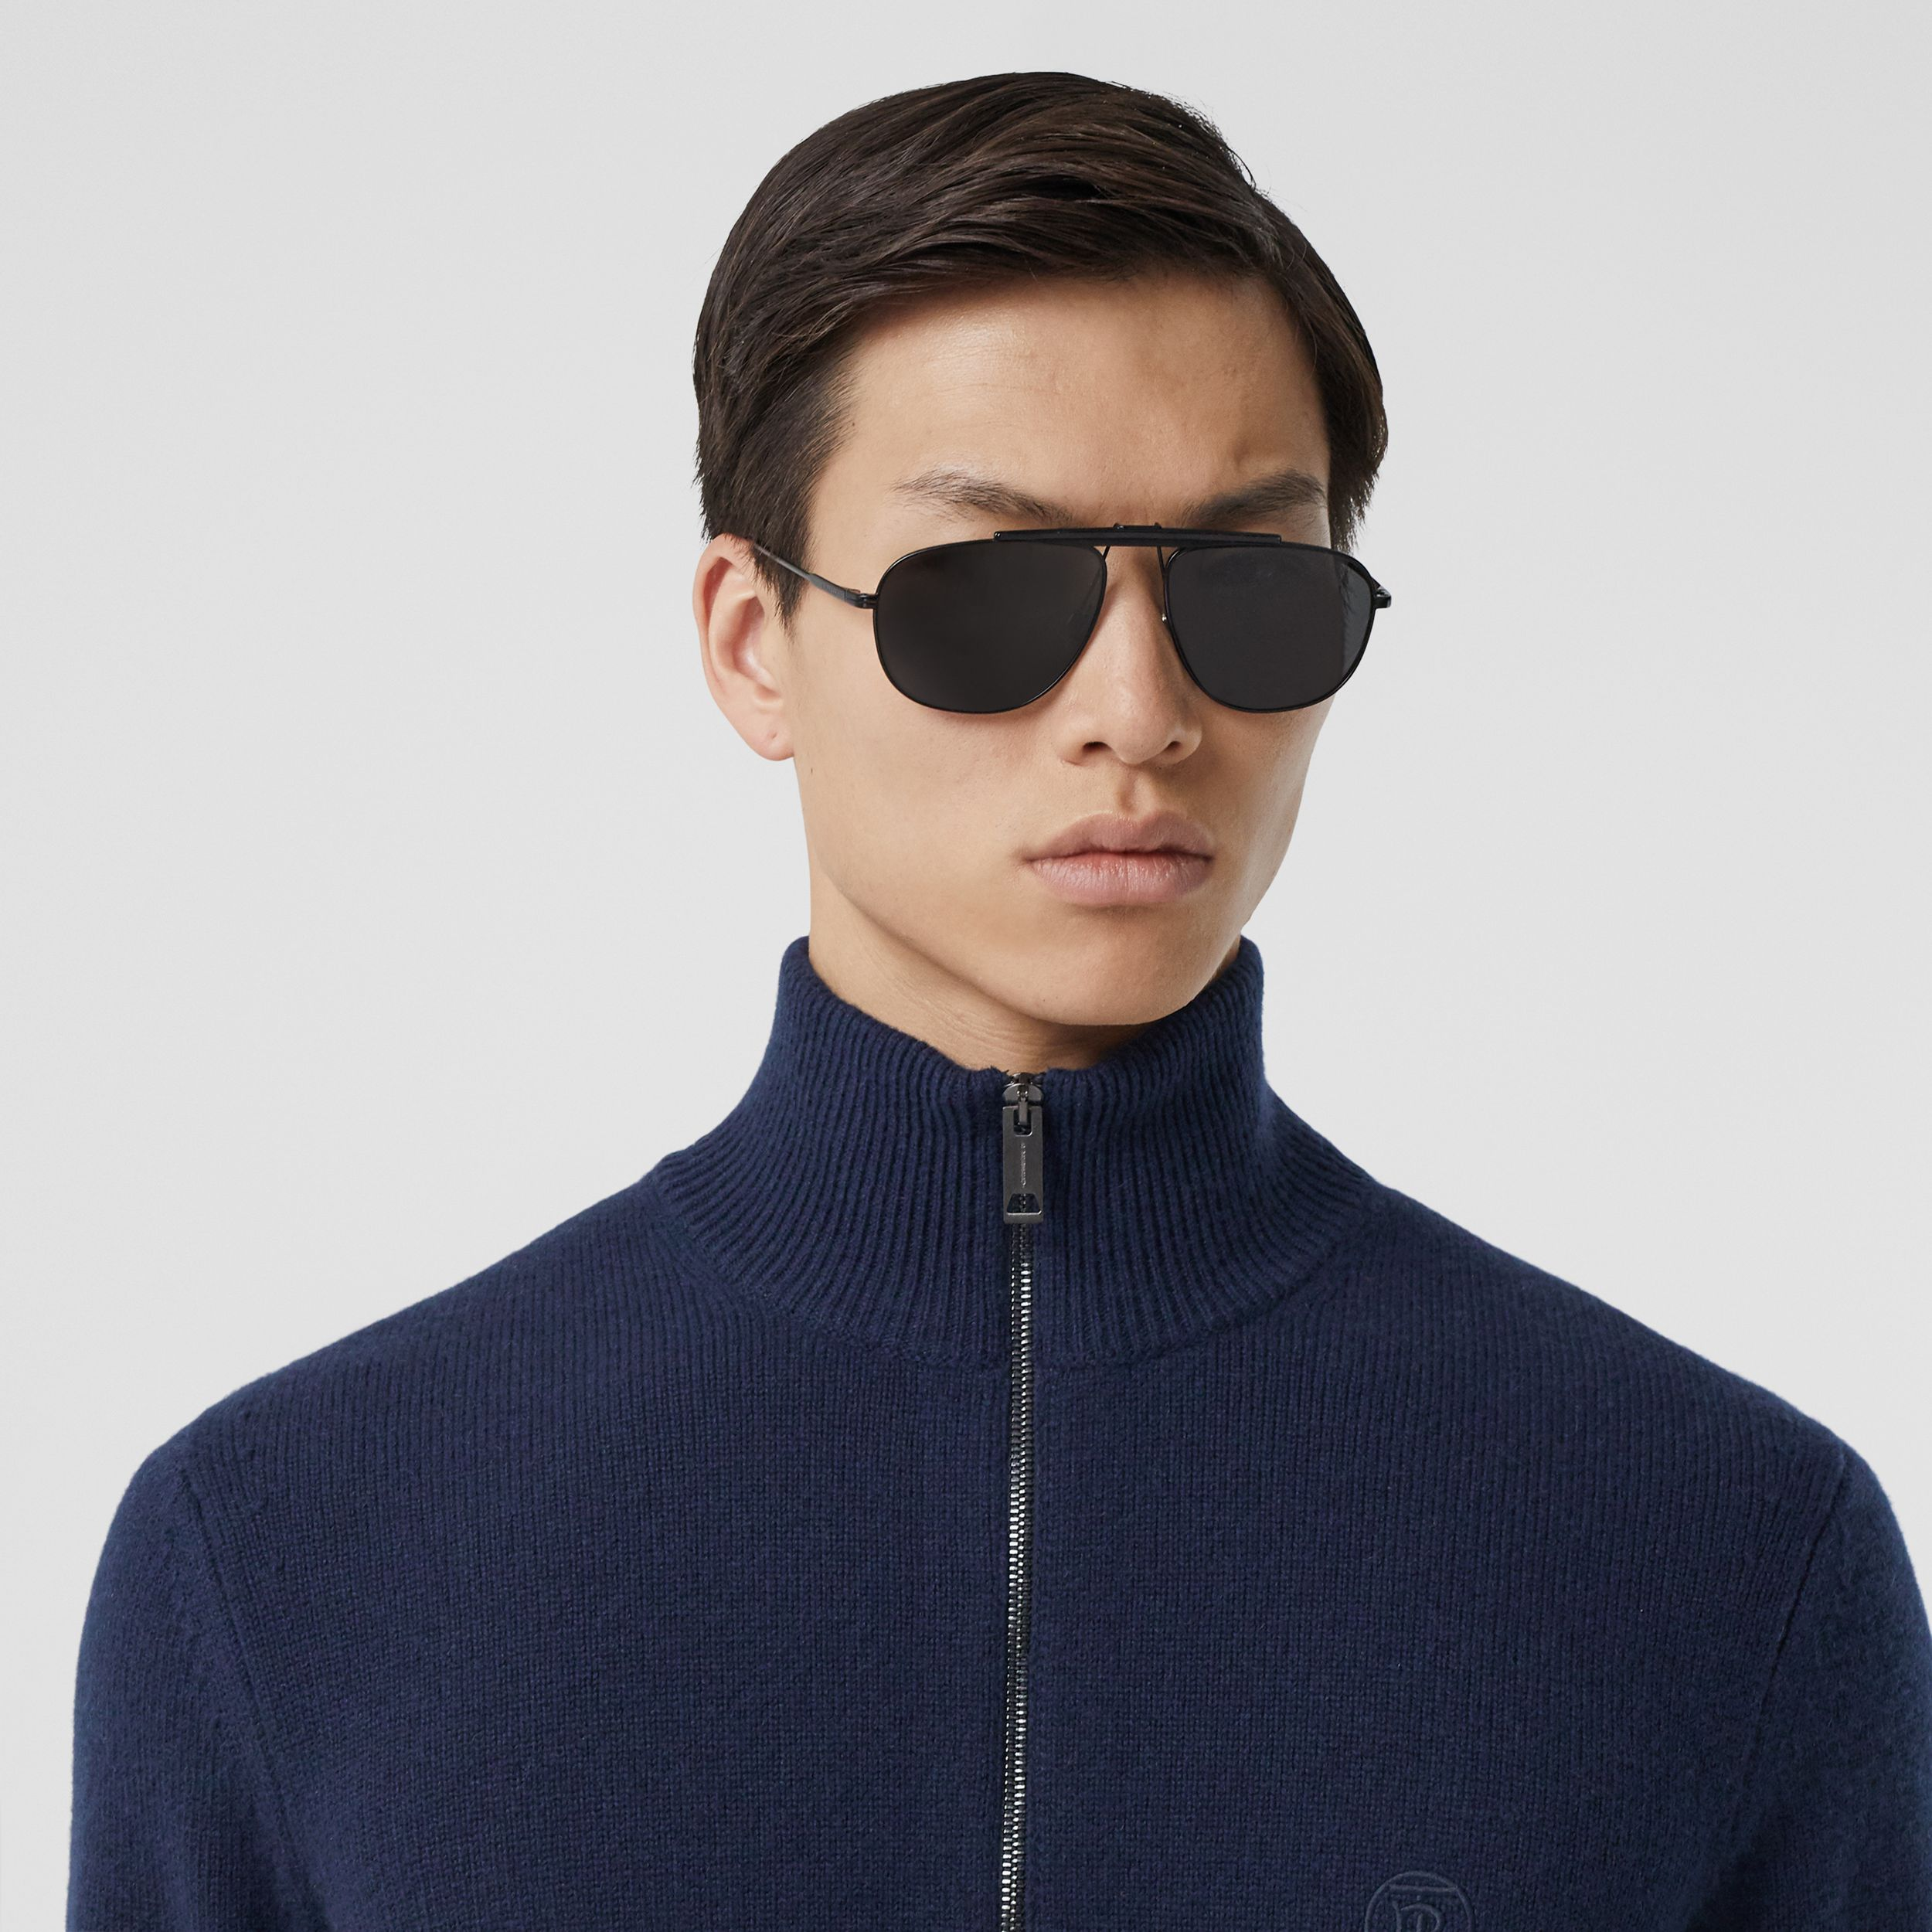 Monogram Motif Cashmere Funnel Neck Sweater in Navy - Men | Burberry - 2